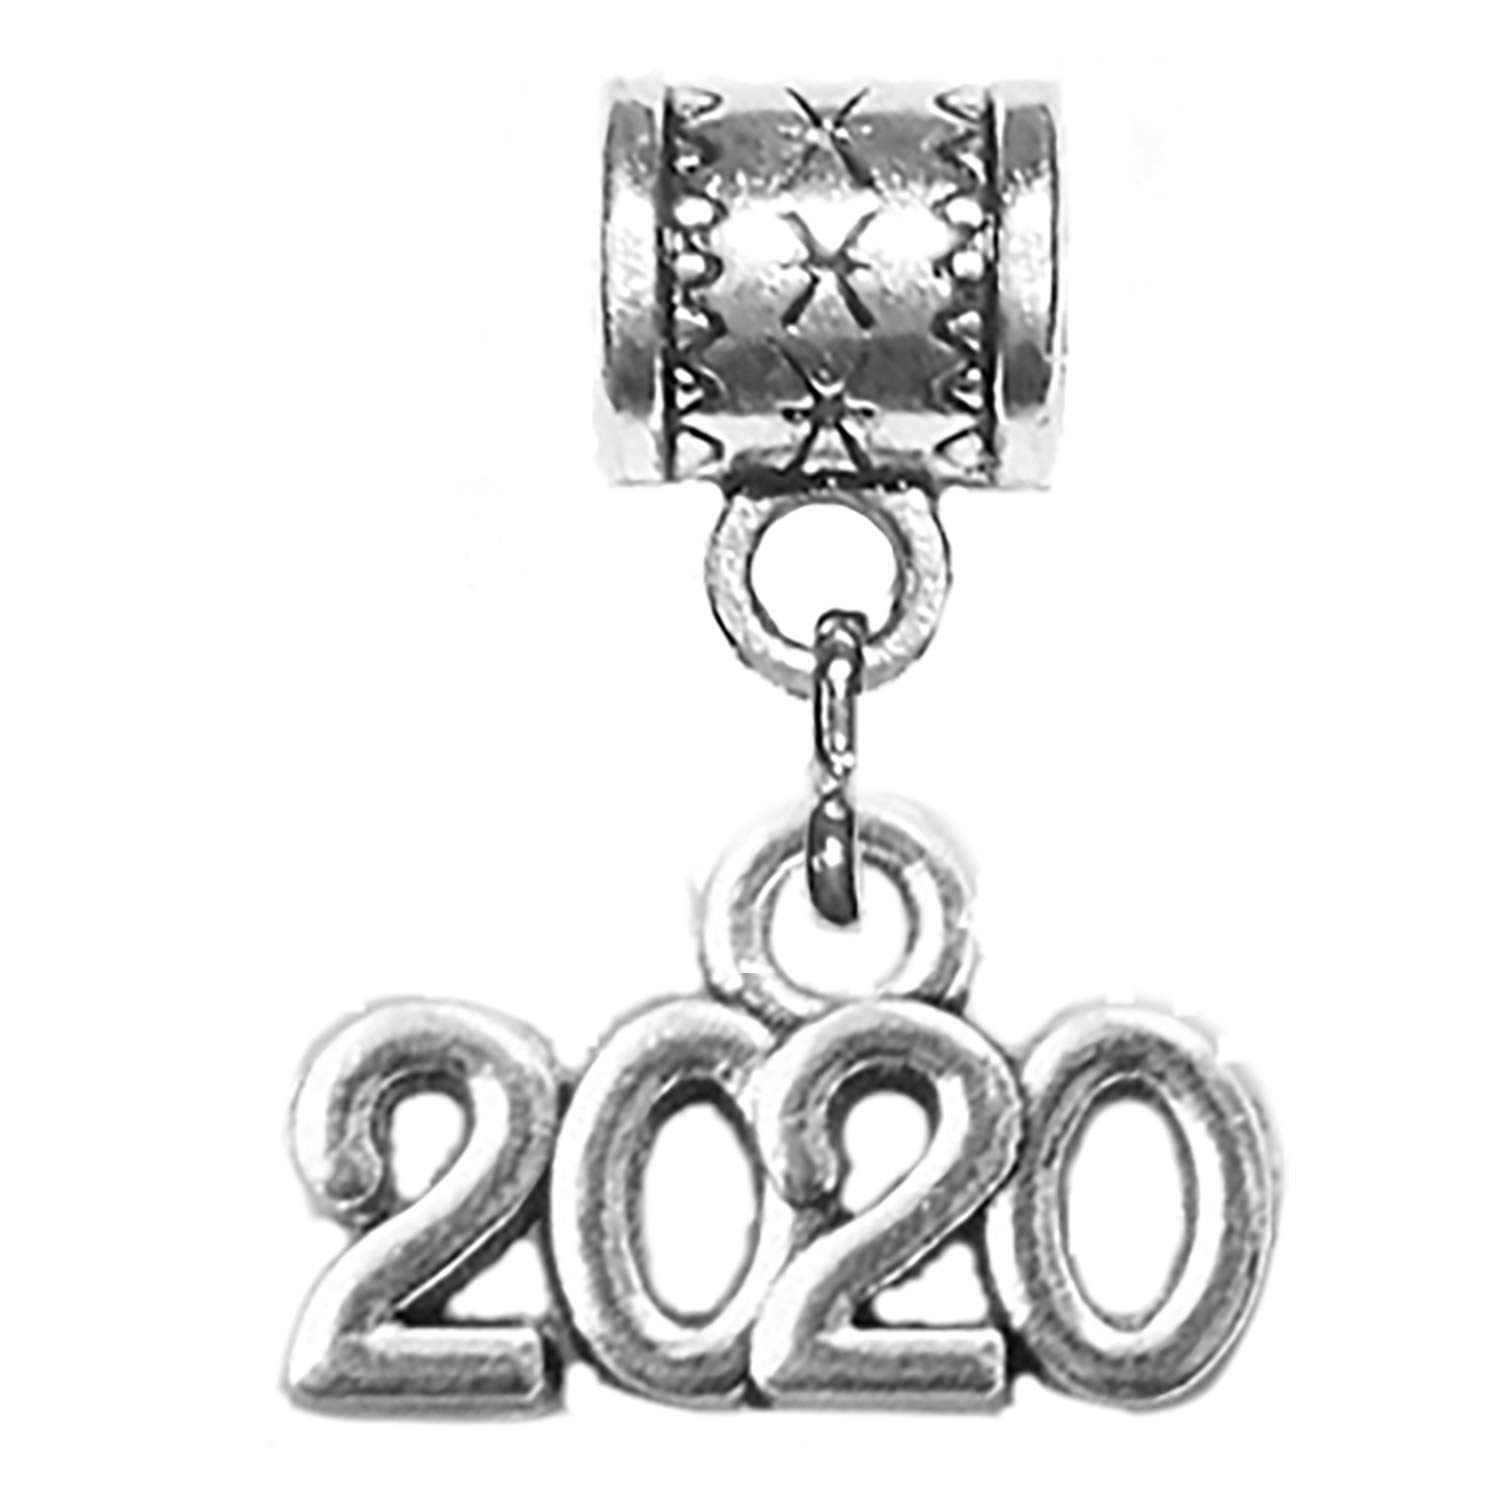 amazon 2020 antique silver charm by mossy cabin for modern Hello Kitty Cakes amazon 2020 antique silver charm by mossy cabin for modern large hole snake chain charm bracelets or add to a neck chain pendant necklace or key